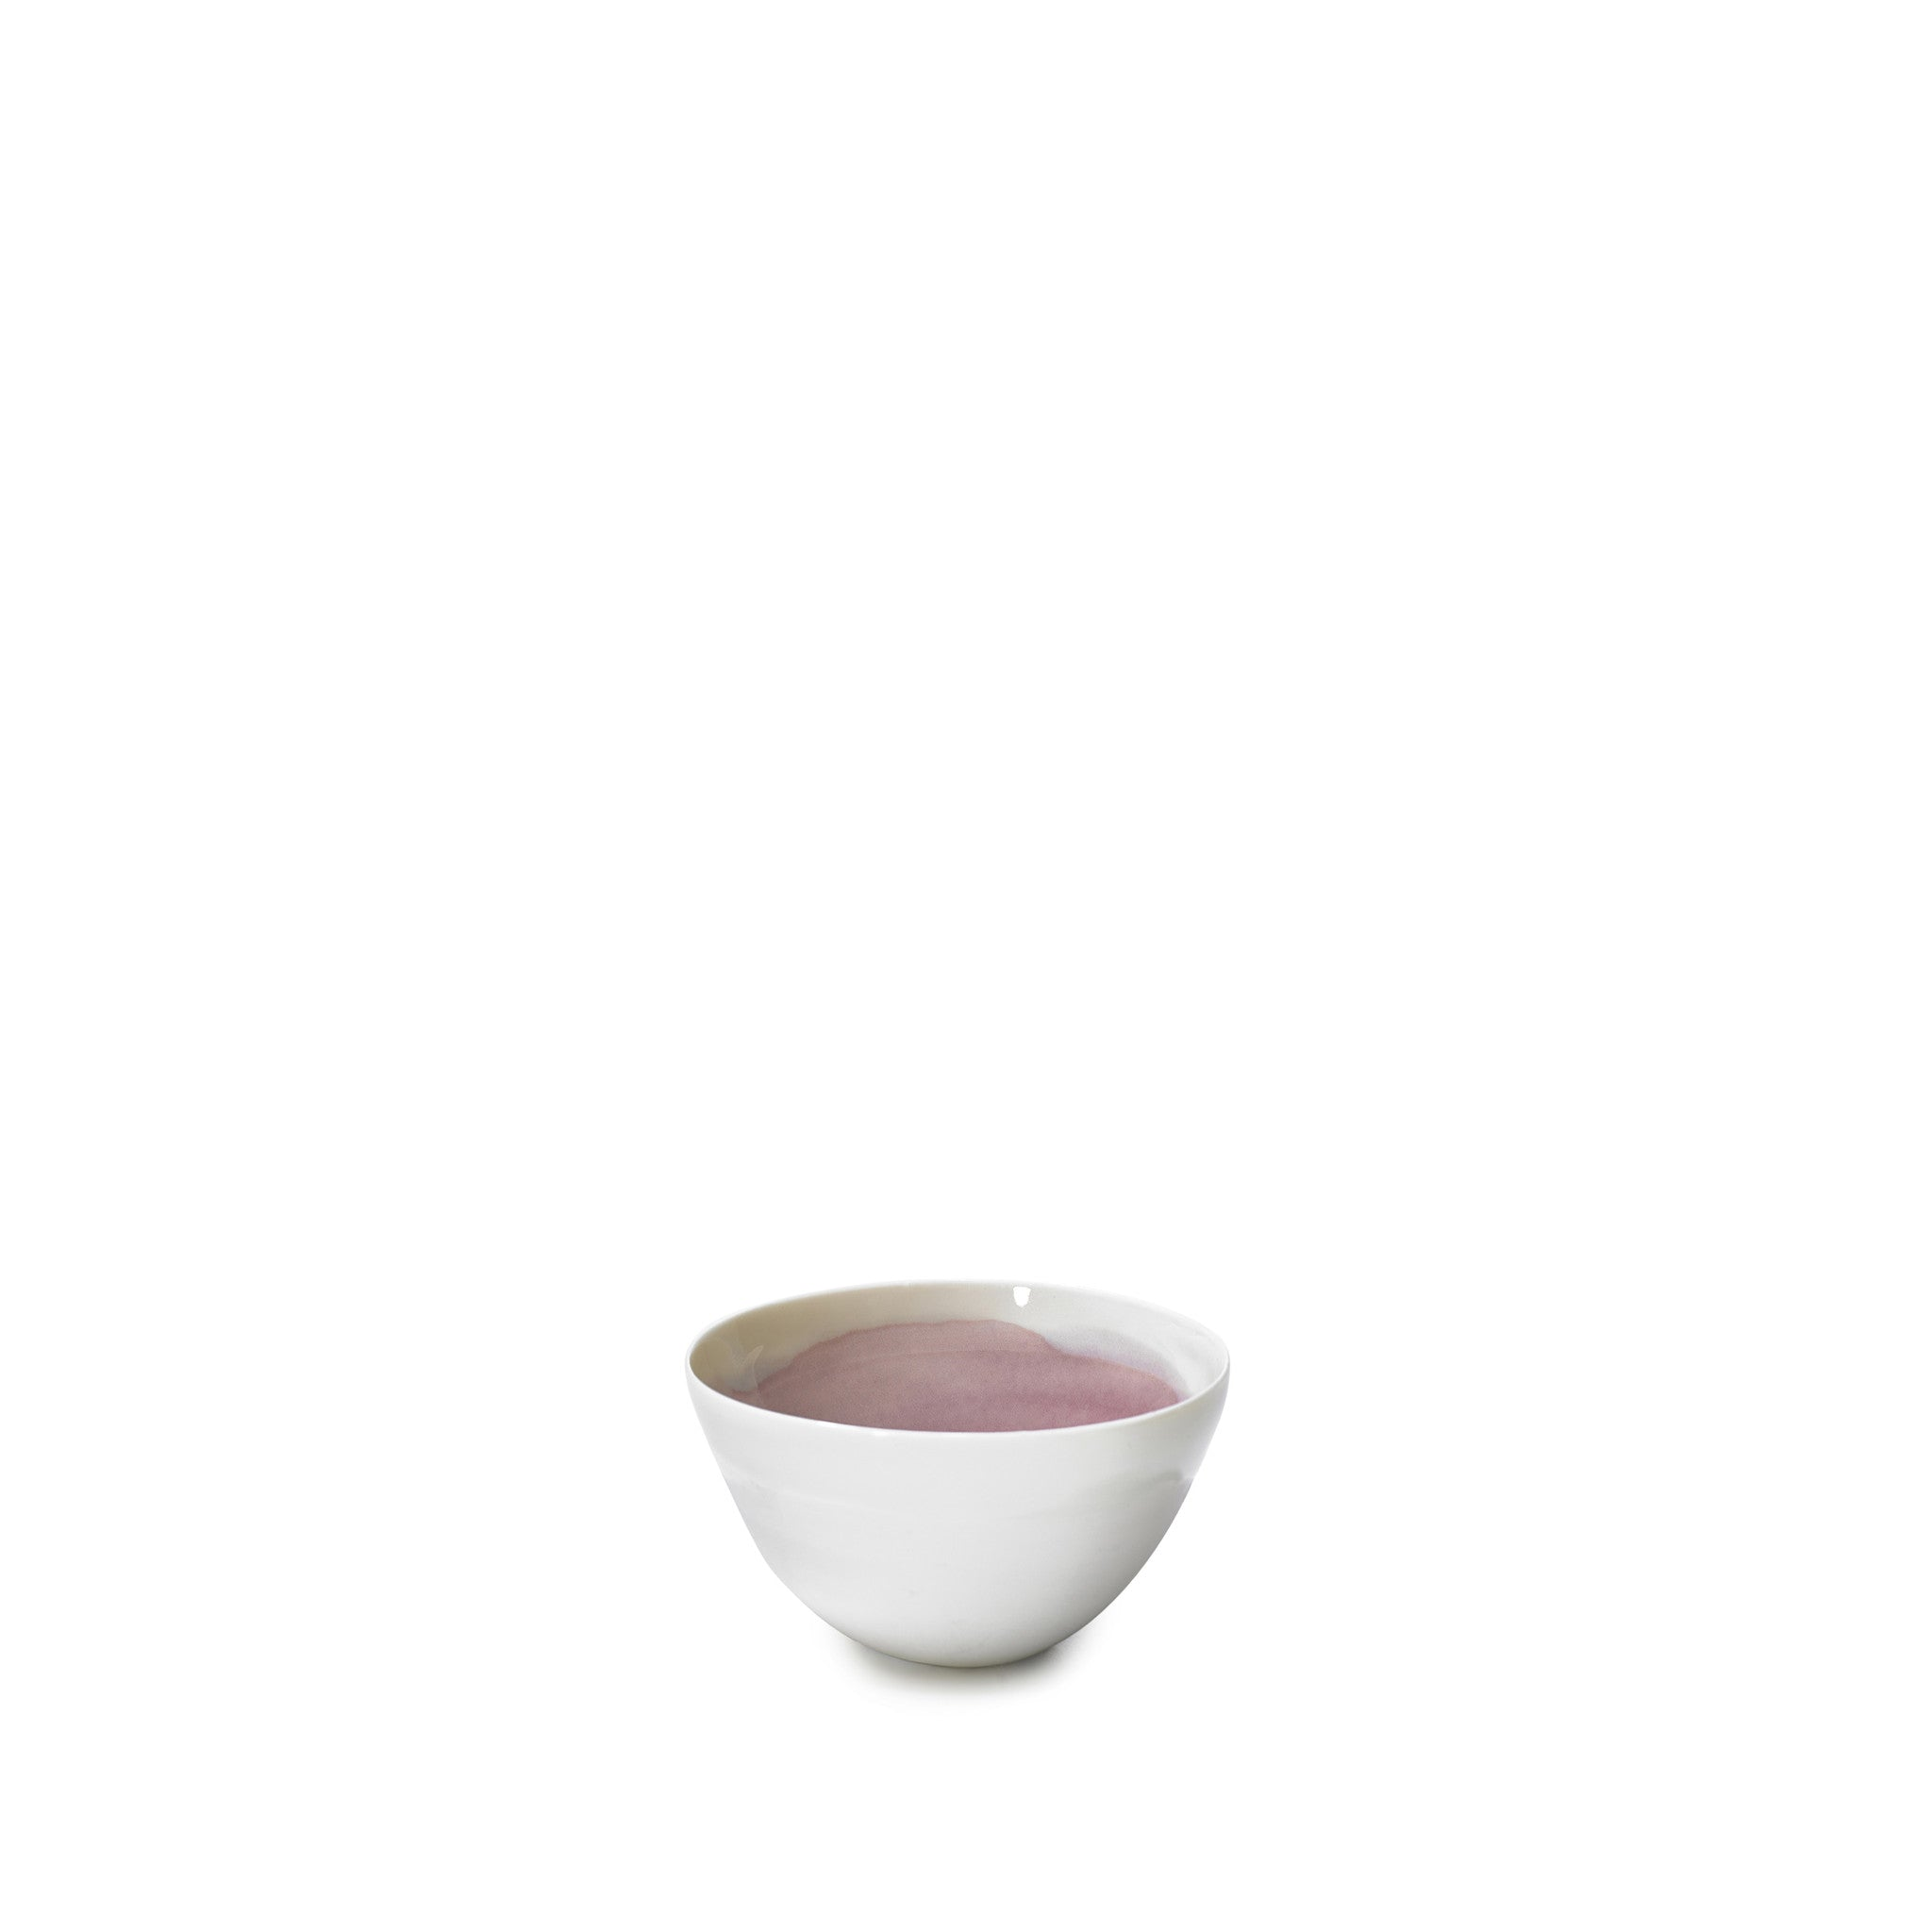 Small Grape Purple Ceramic Bowl with White Edge, 8cm